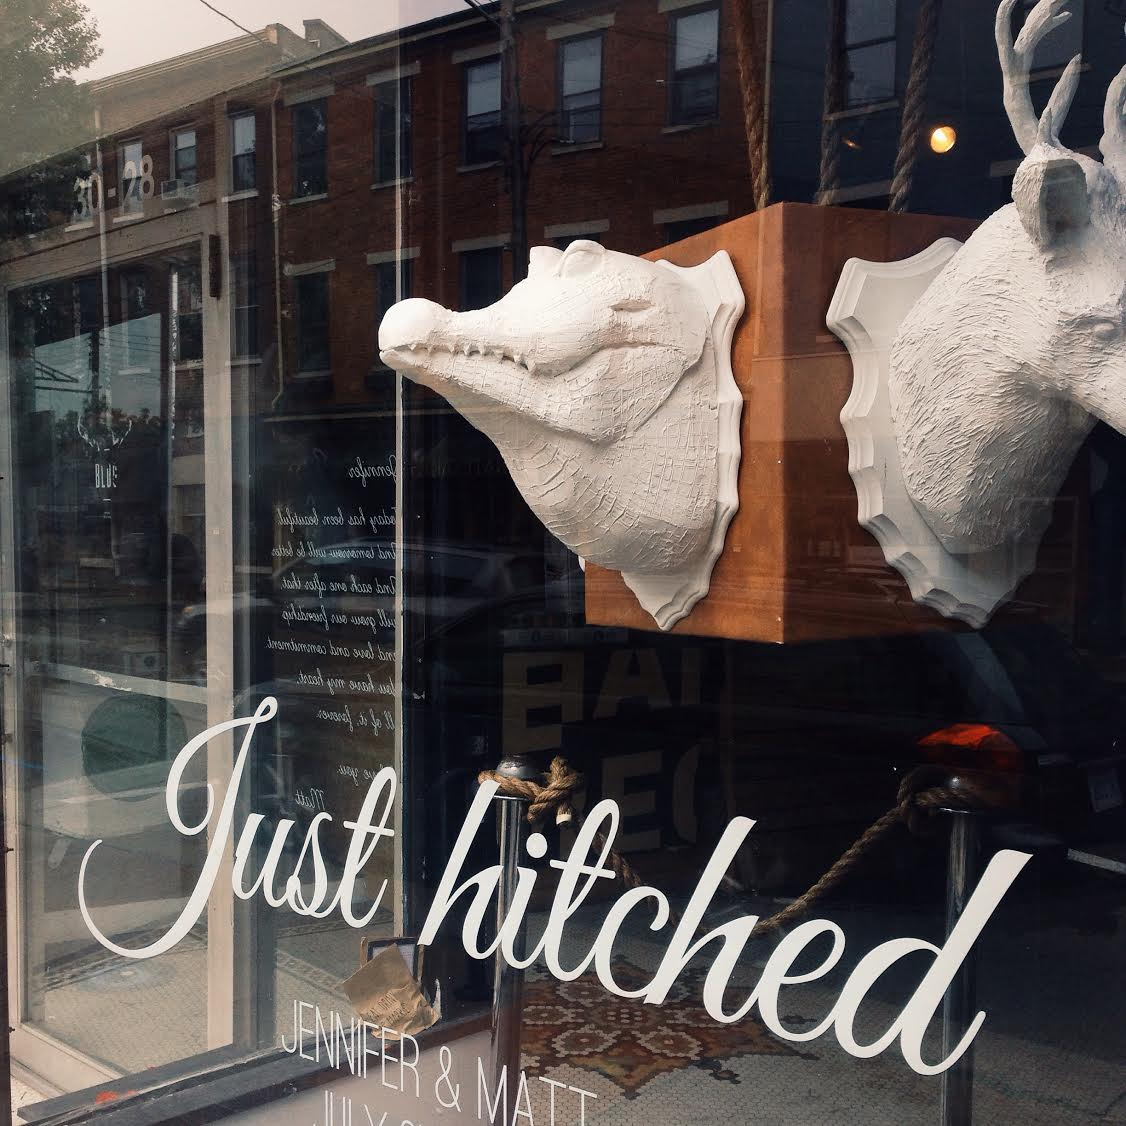 A window display created for a wedding reception. Each side showcases an animal that represents a piece of the couple's personal history.